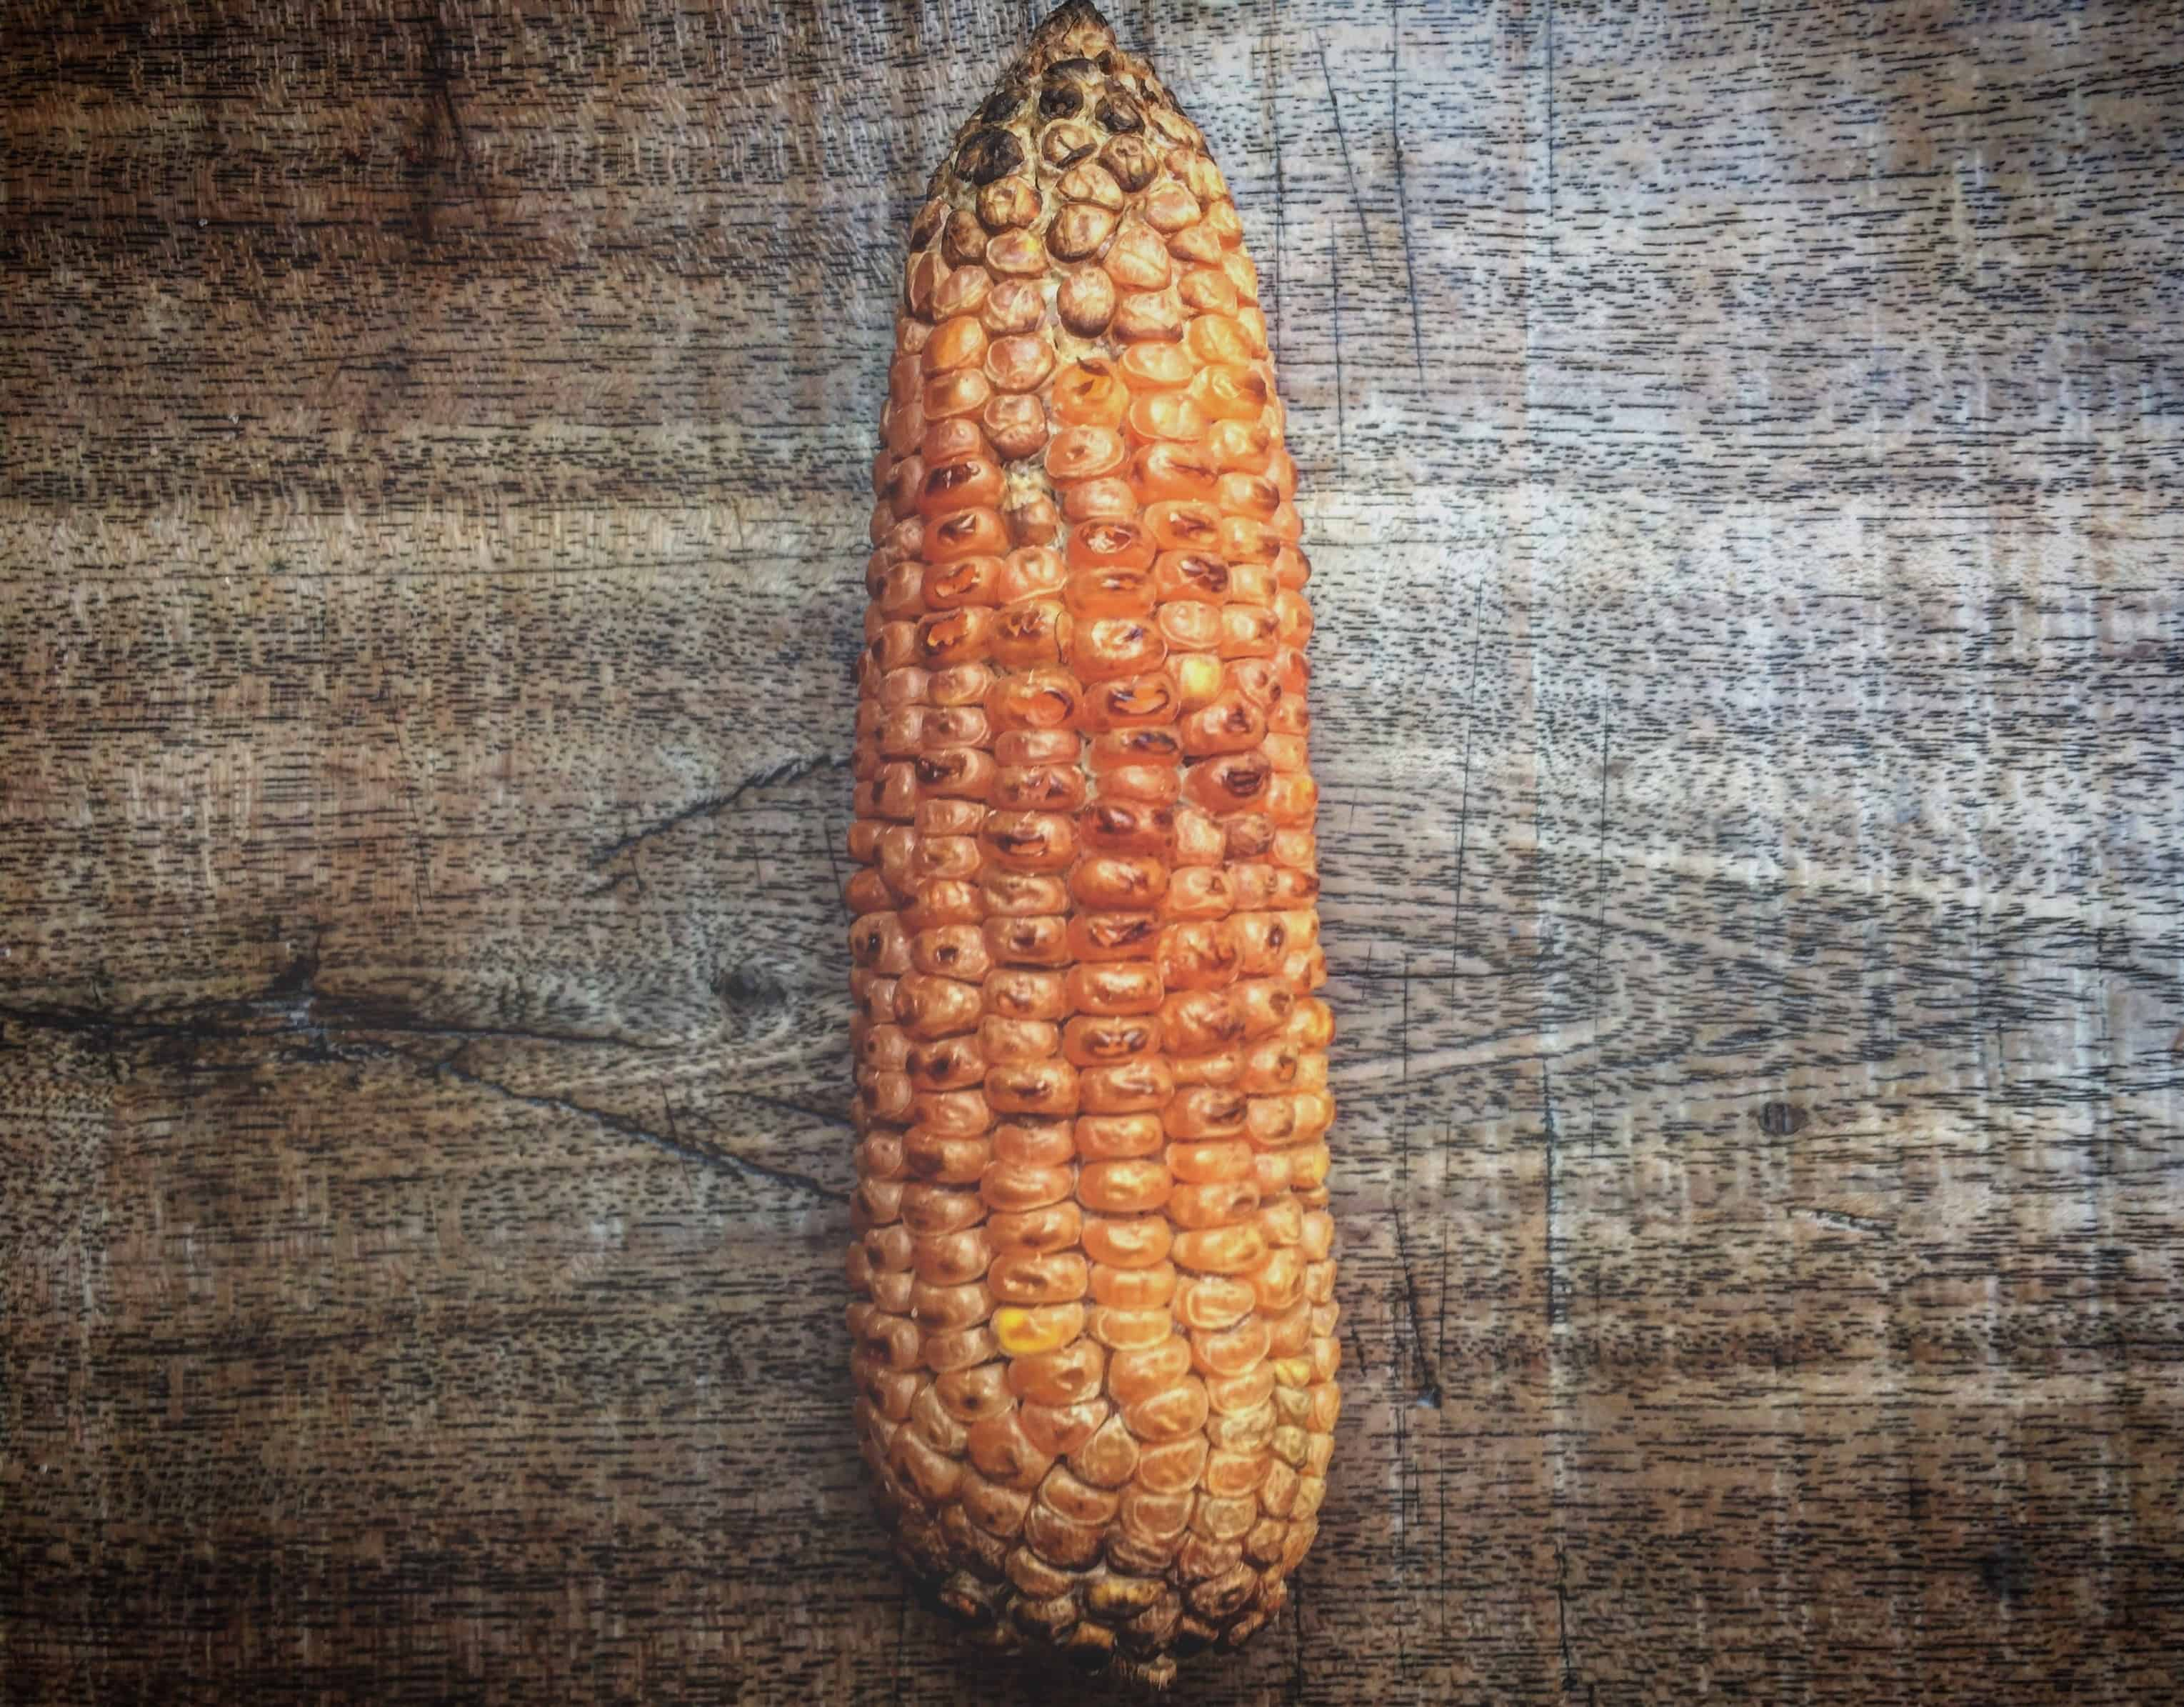 corn on the cob on wood table